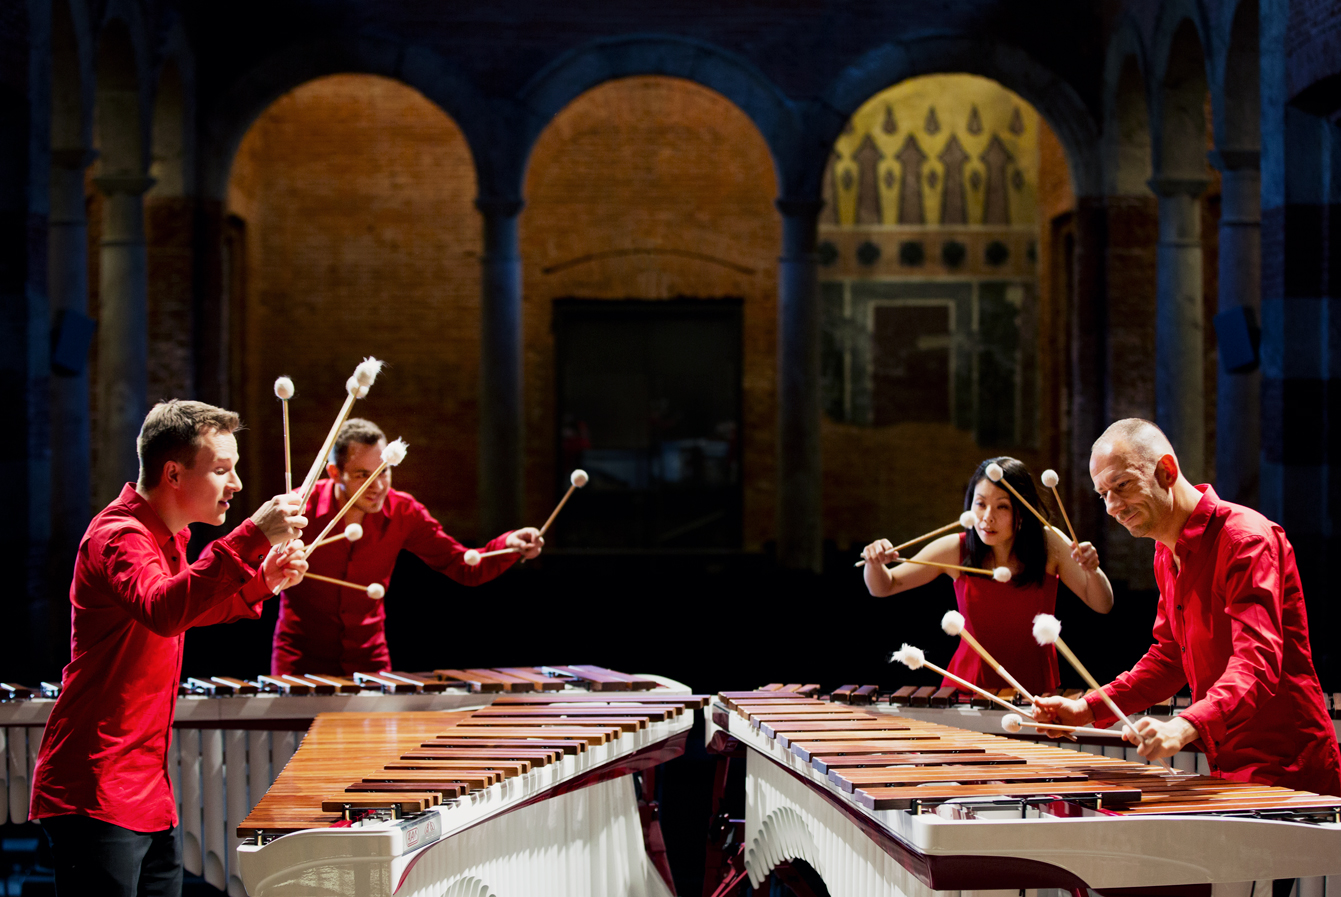 WaveQuartet - Marimba Quartet / Visit website